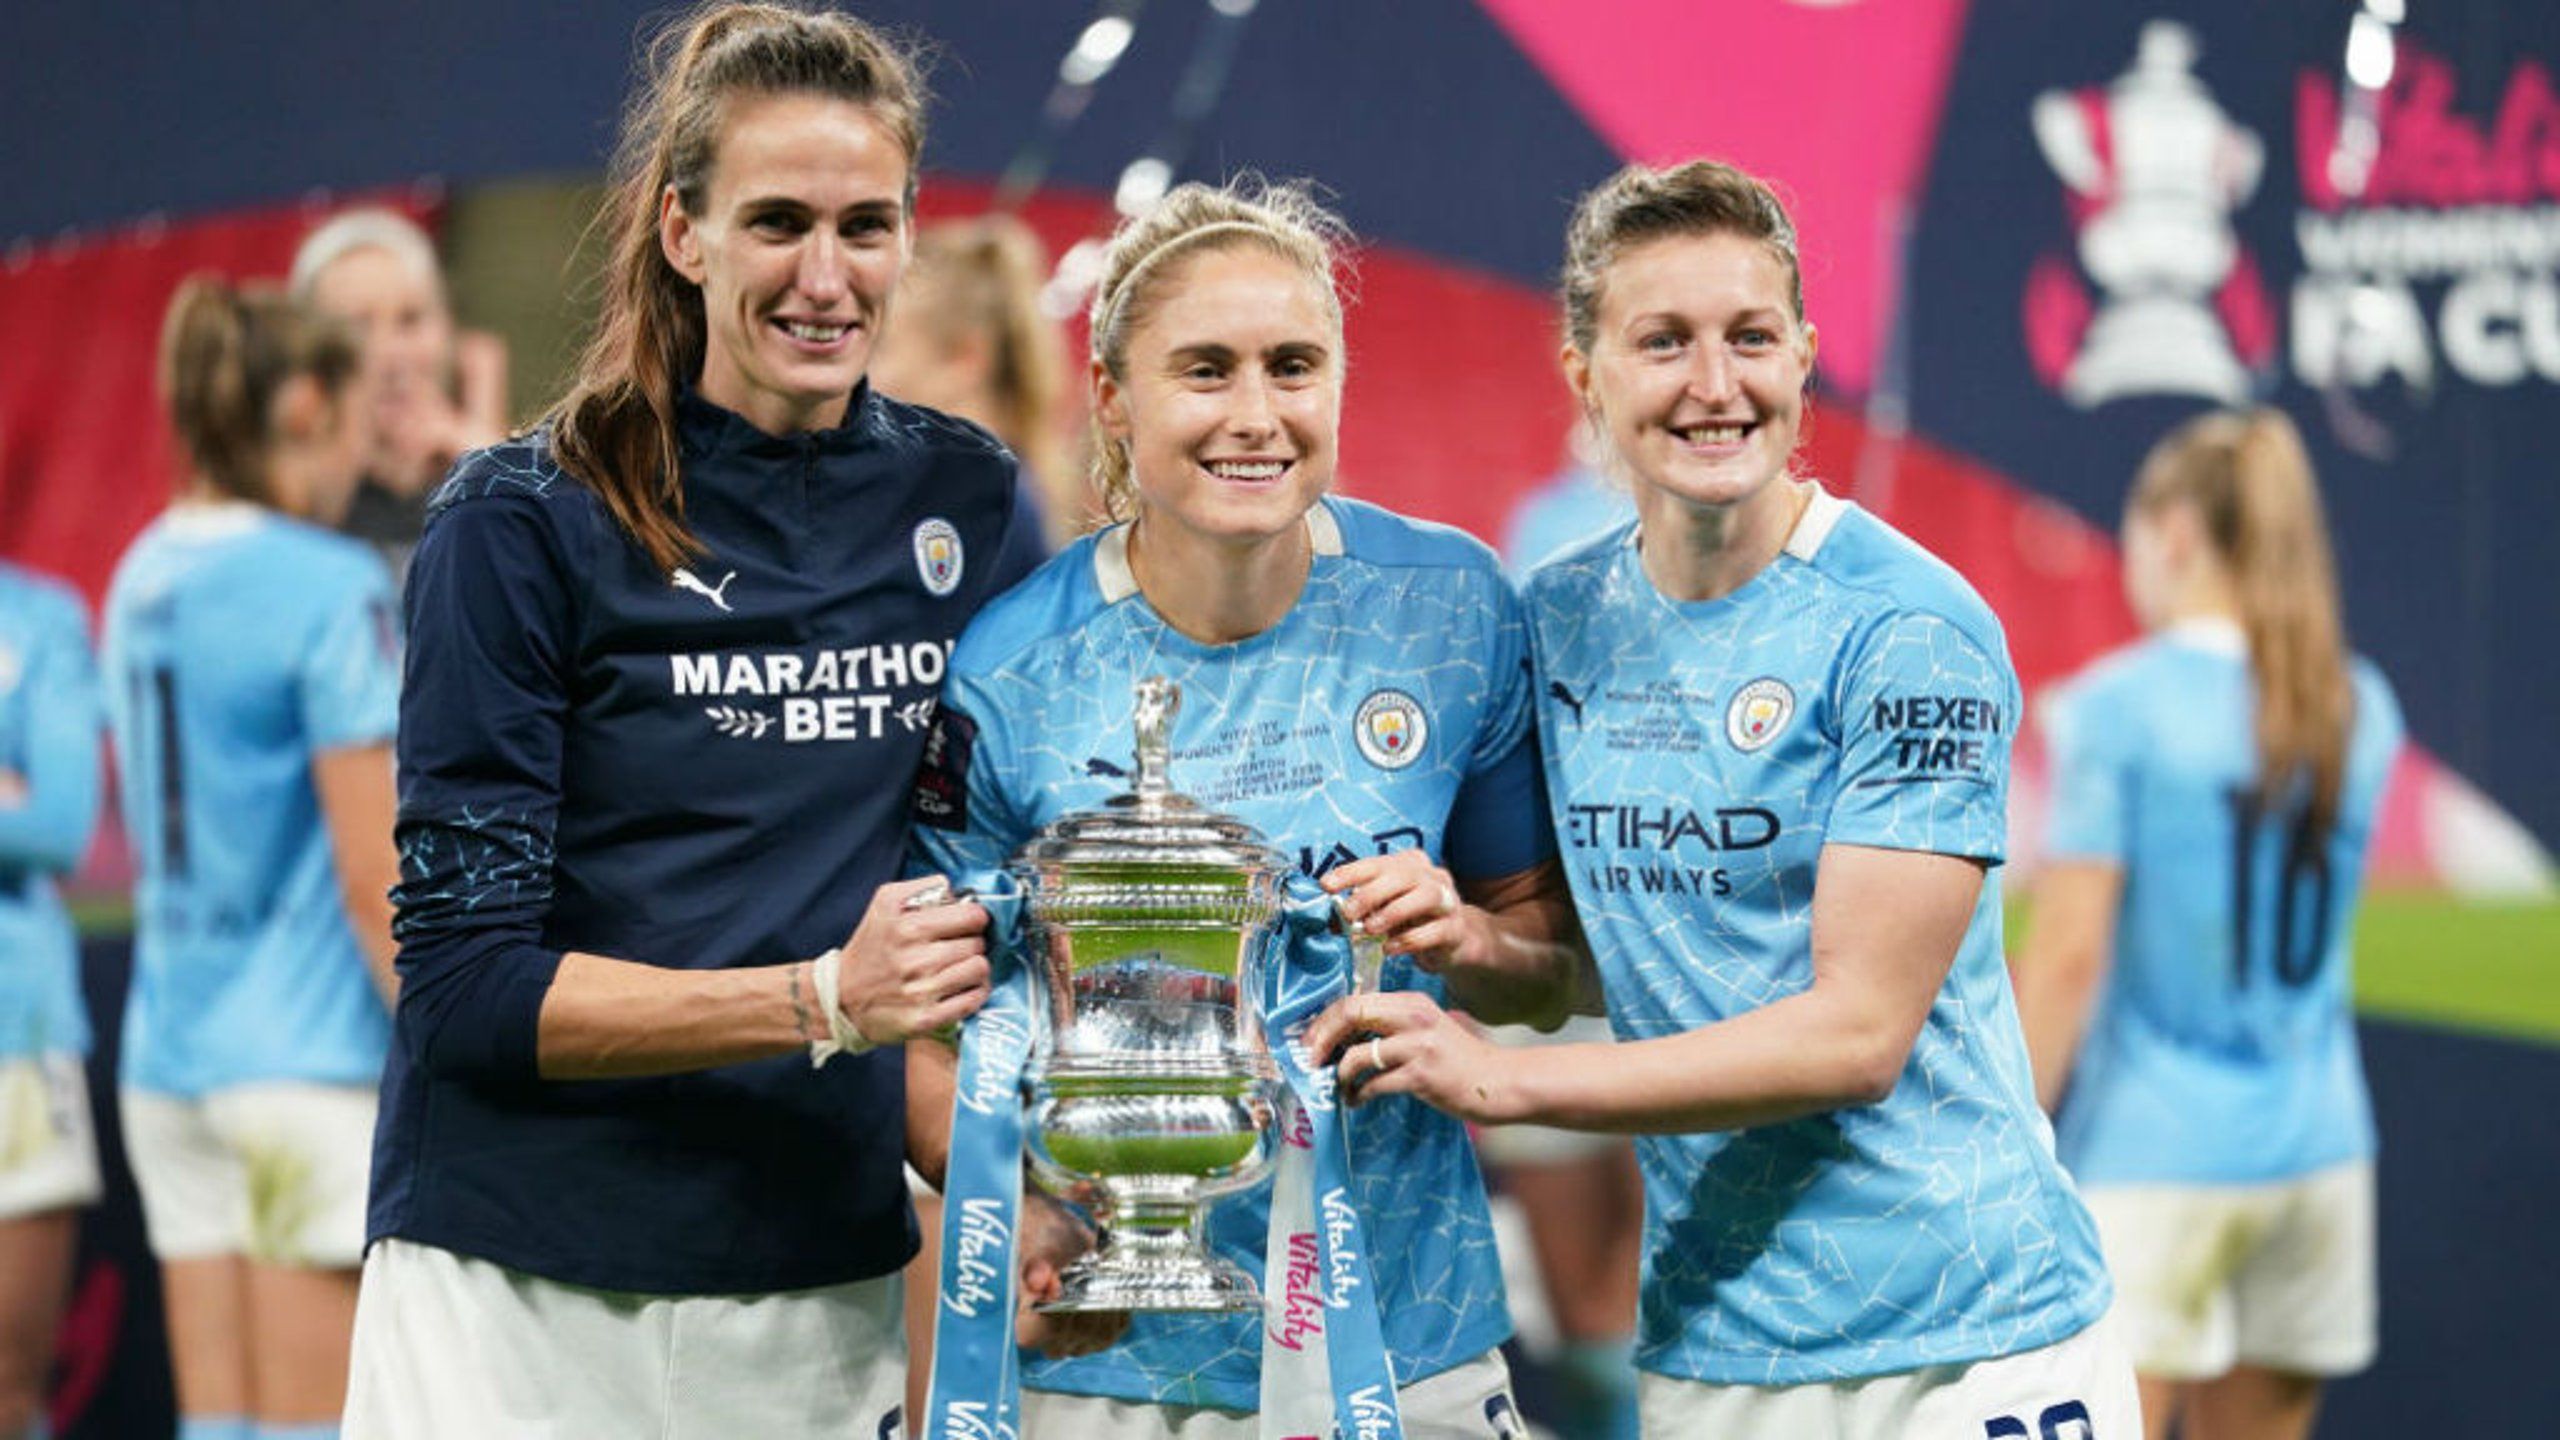 THREE CHEERS: Jill celebrates winning the FA Women's Cup for the third time after this month's win over Everton alongside City and England colleagues Steph Houghton and Ellen White